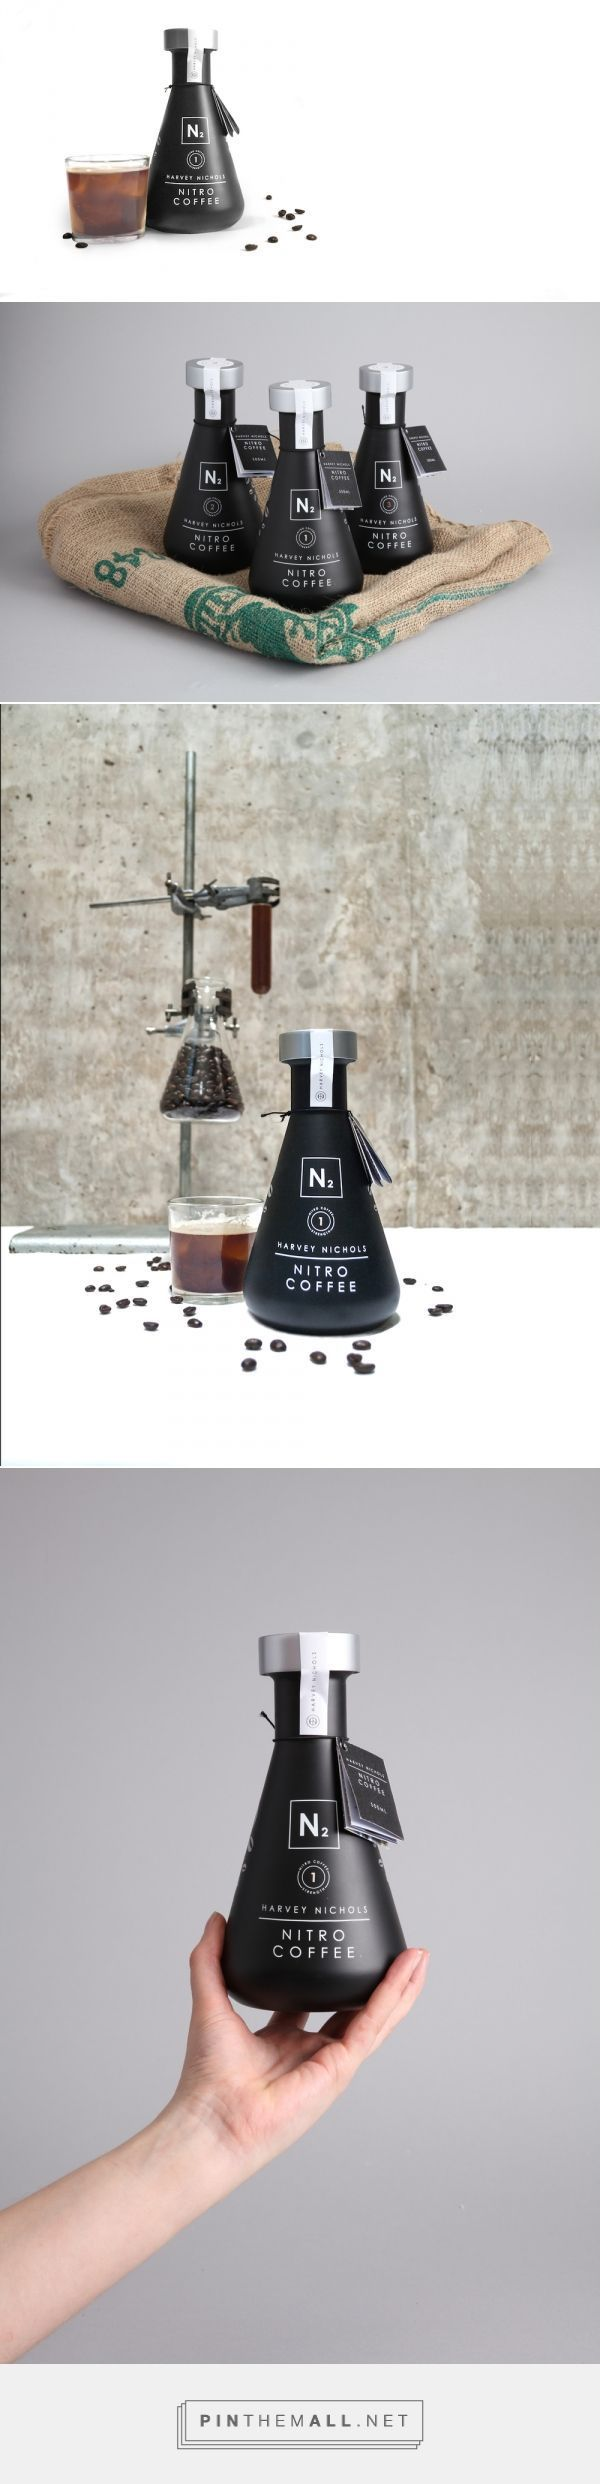 Inspiration Roundup: Beautiful Packaging Designs | From up North